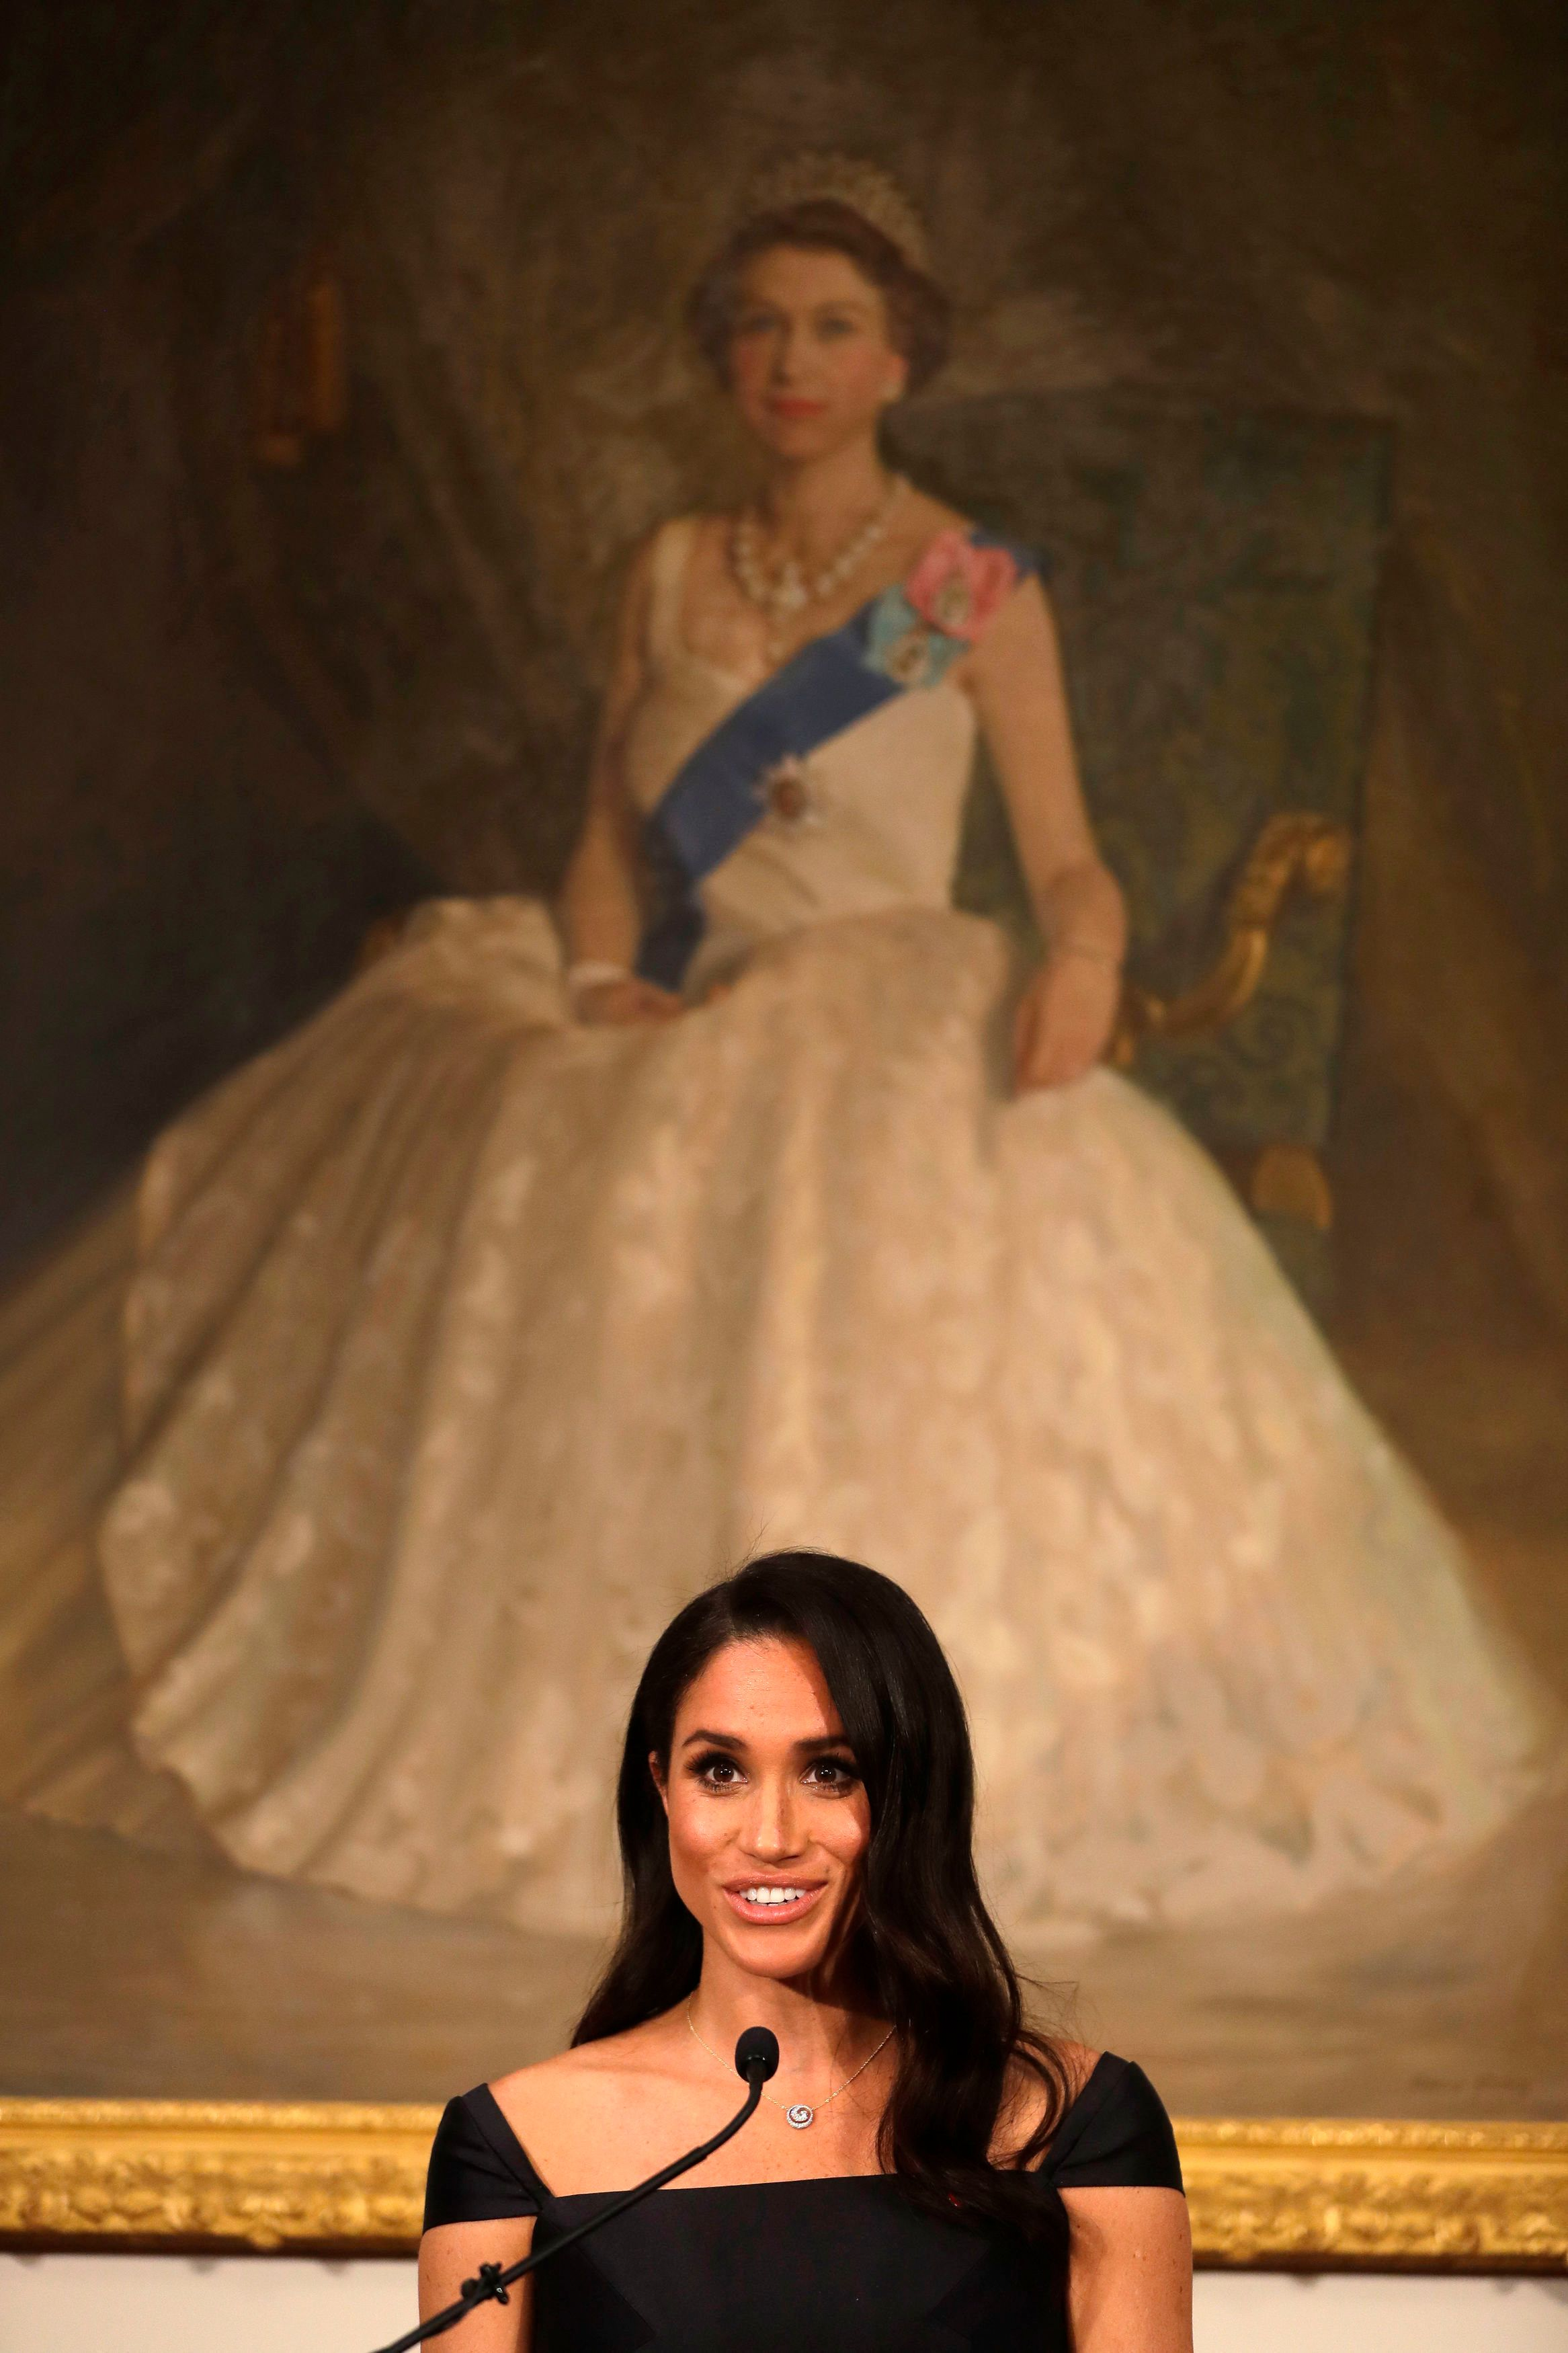 The Duchess of Sussex delivers the speech in front of a portrait of Queen Elizabeth II.